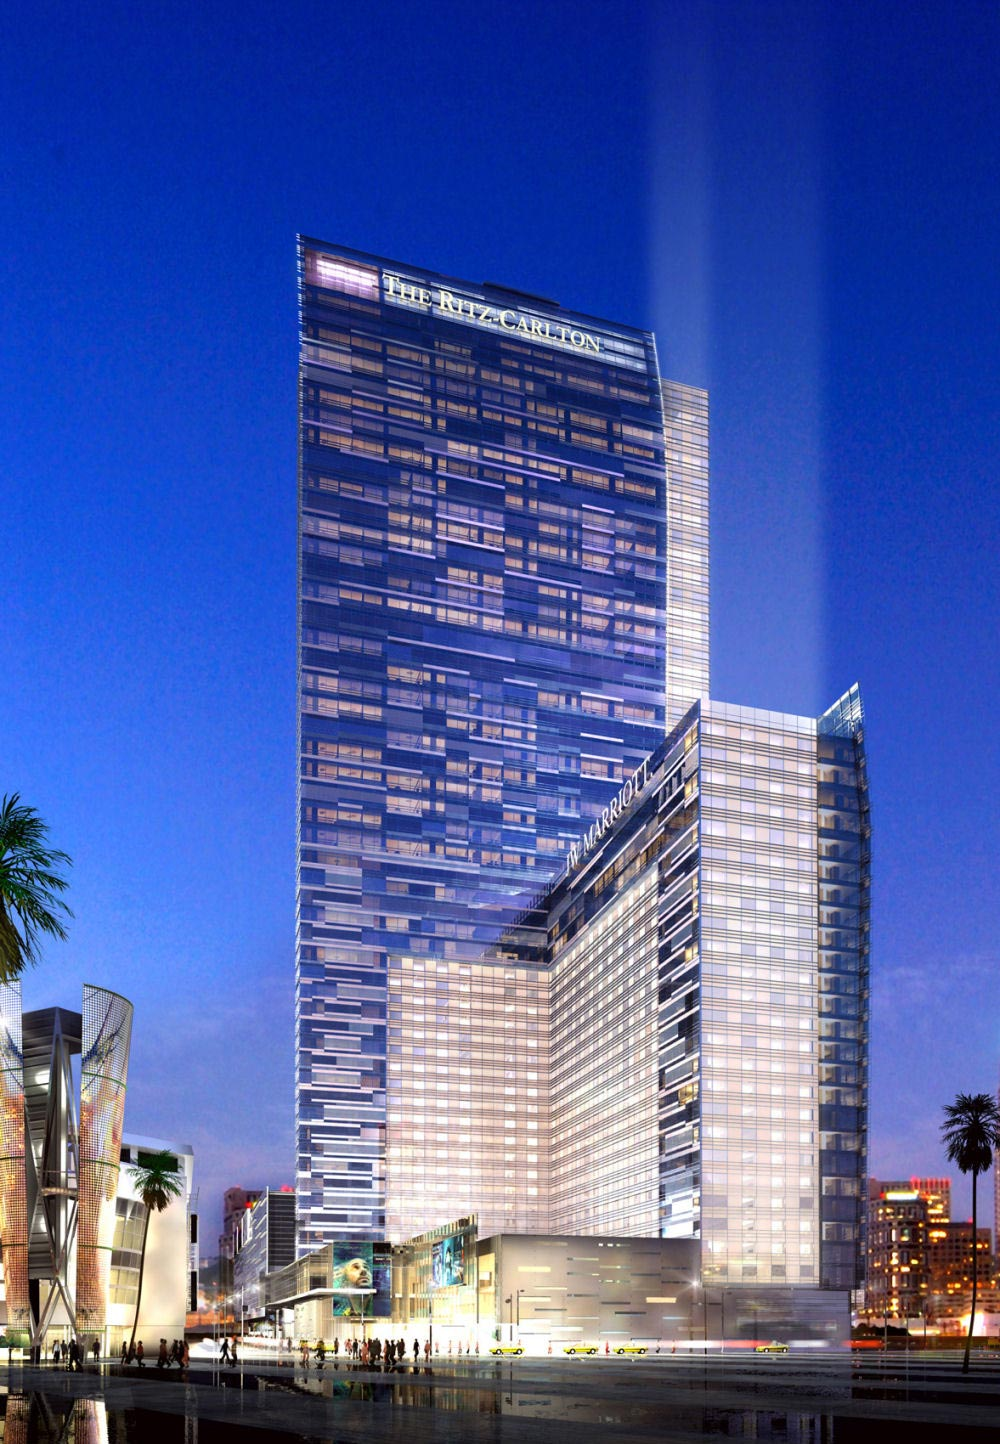 Jw Marriott Hotel La Live Los Angeles Exterior View